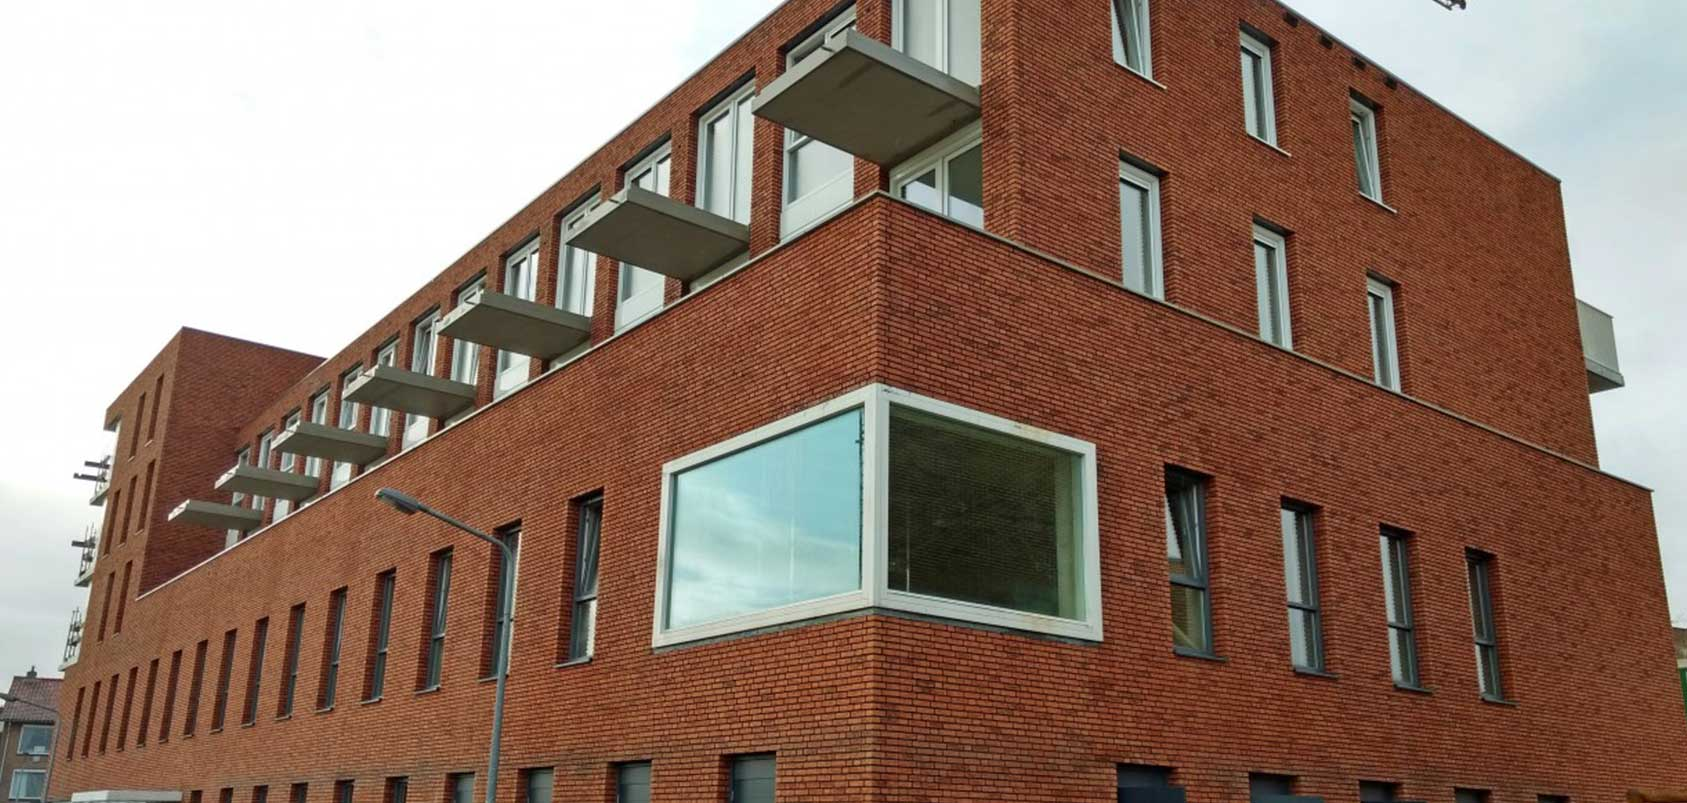 26 Apartments and Zorgplint at Hilversum